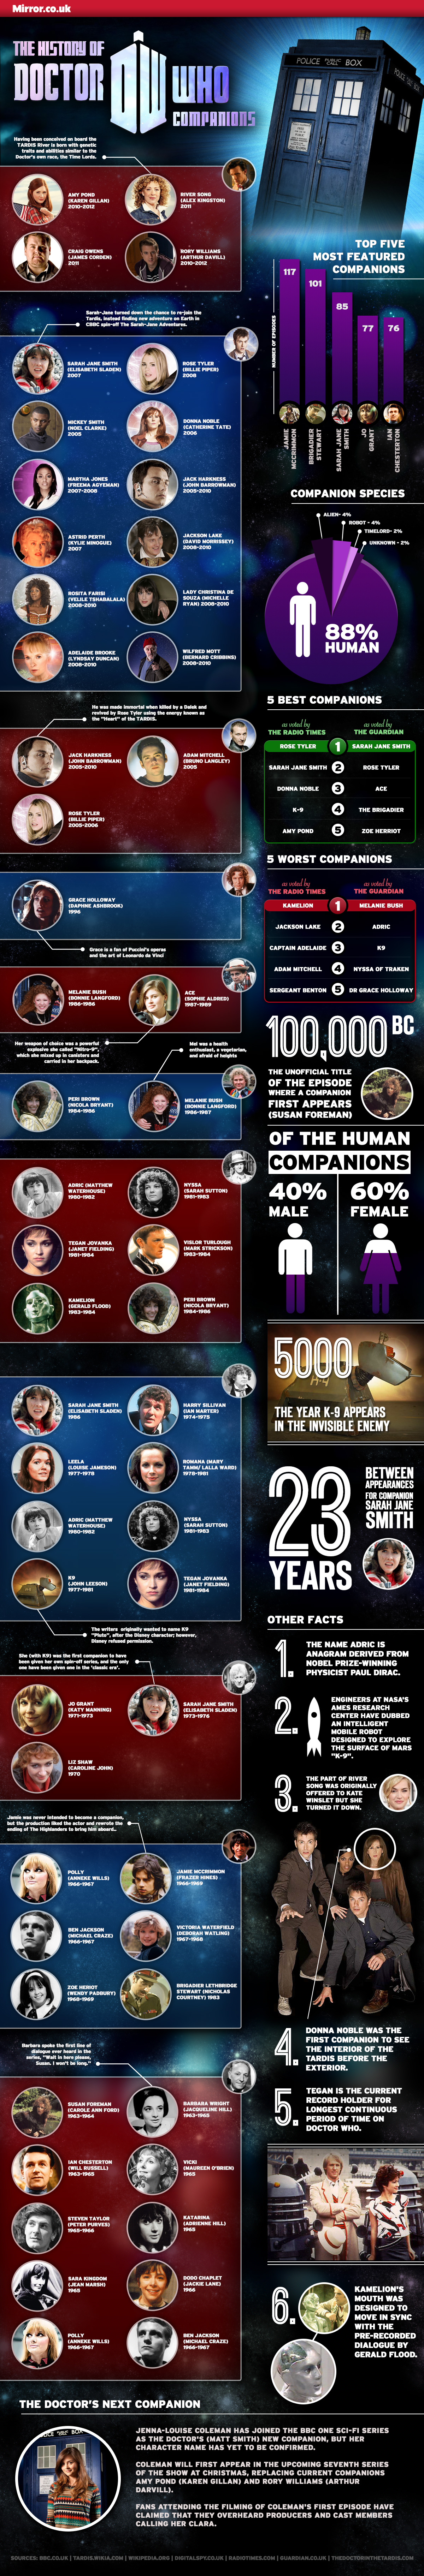 History of doctor companions